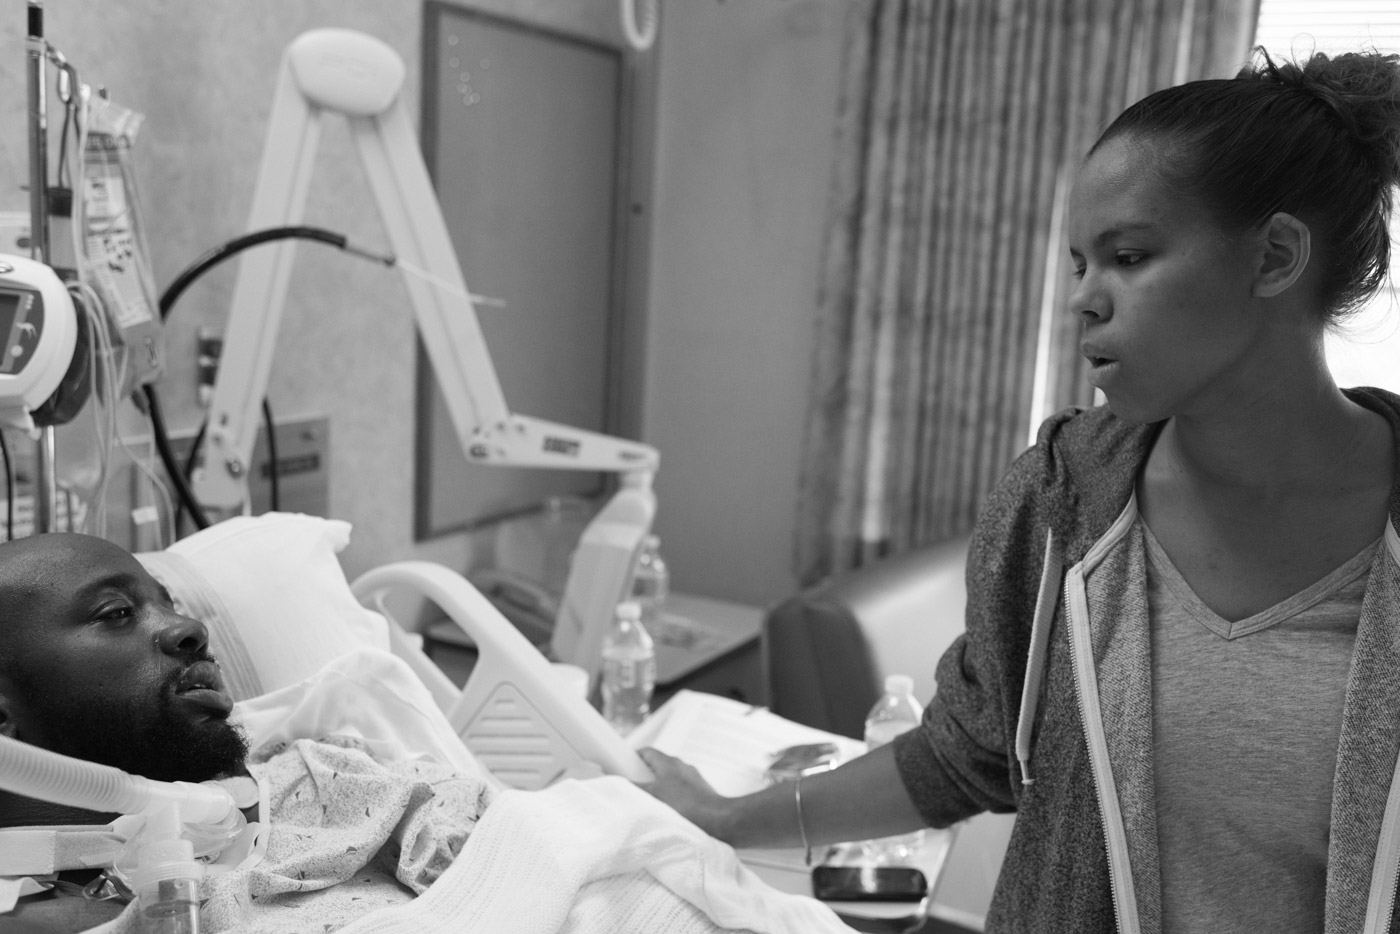 Atiff, along with his nephew, Troy, was shot during a robbery in Philadelphia. Troy was hit once and killed almost immediately. Atiff was shot 15 times and lived, although he remains paralyzed from the neck down. His wife Carissa will need to care for him for the rest of his life.